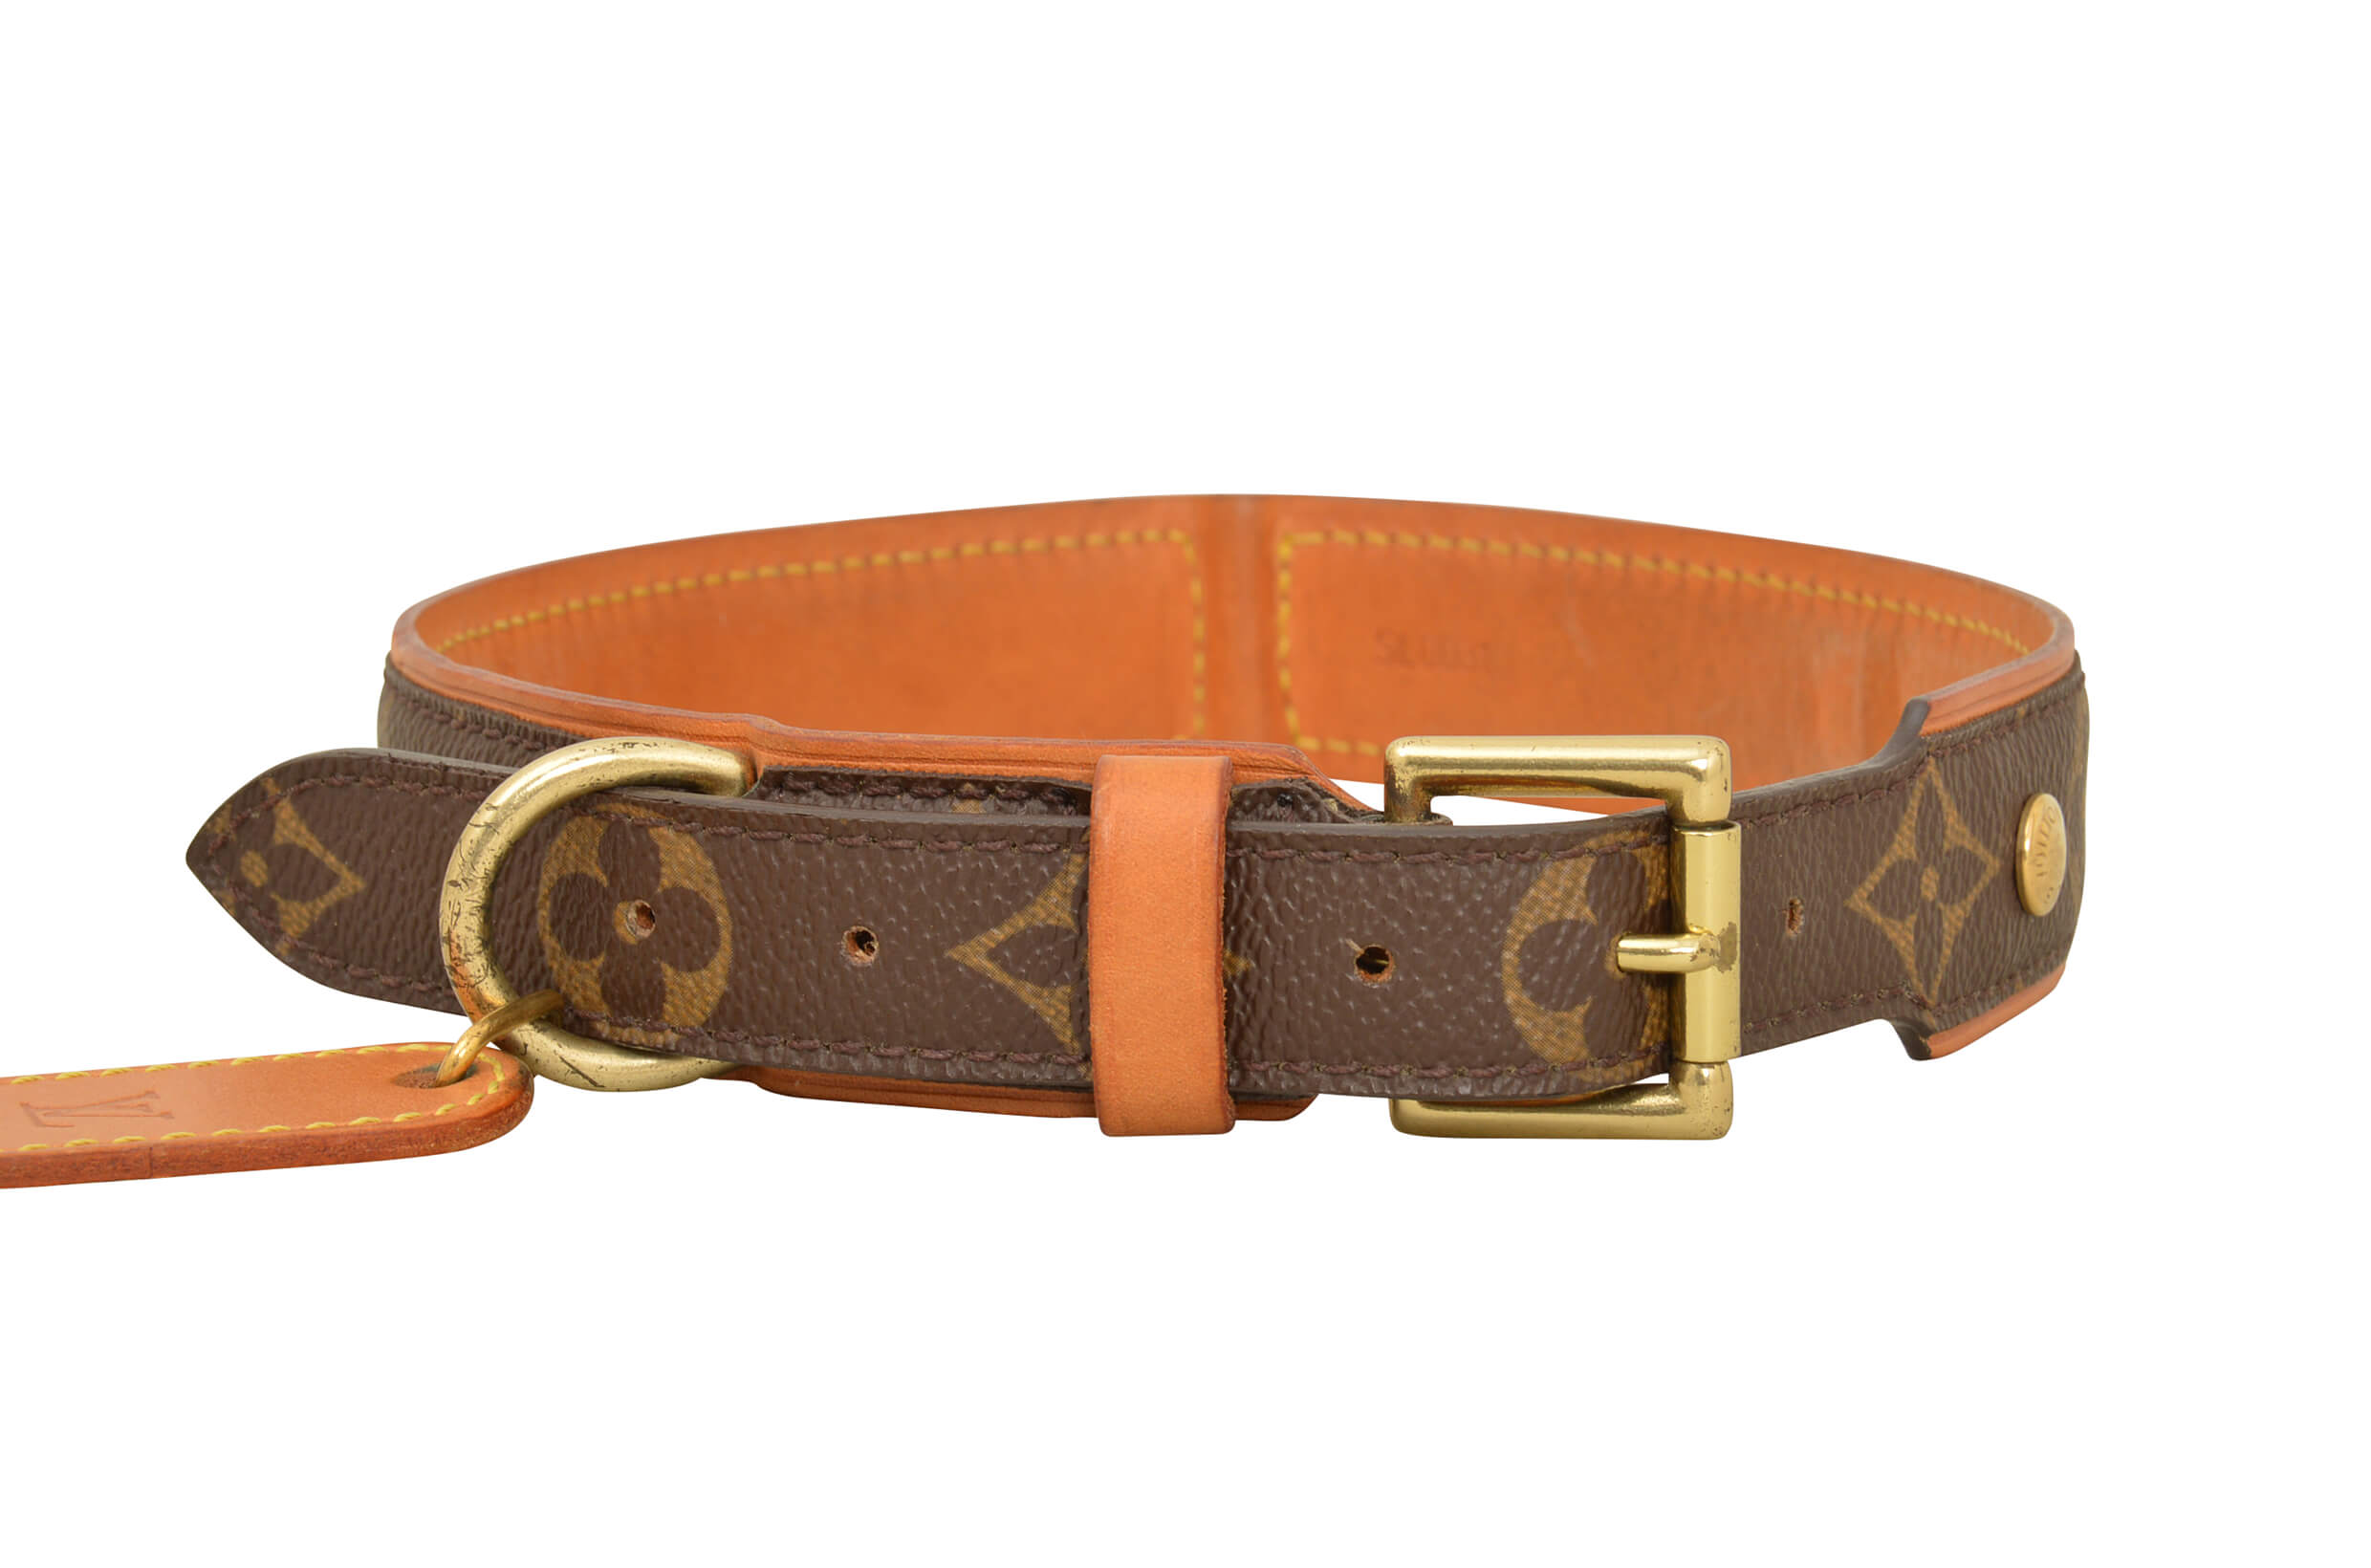 Louis Vuitton Dog Collar Ebay Uk